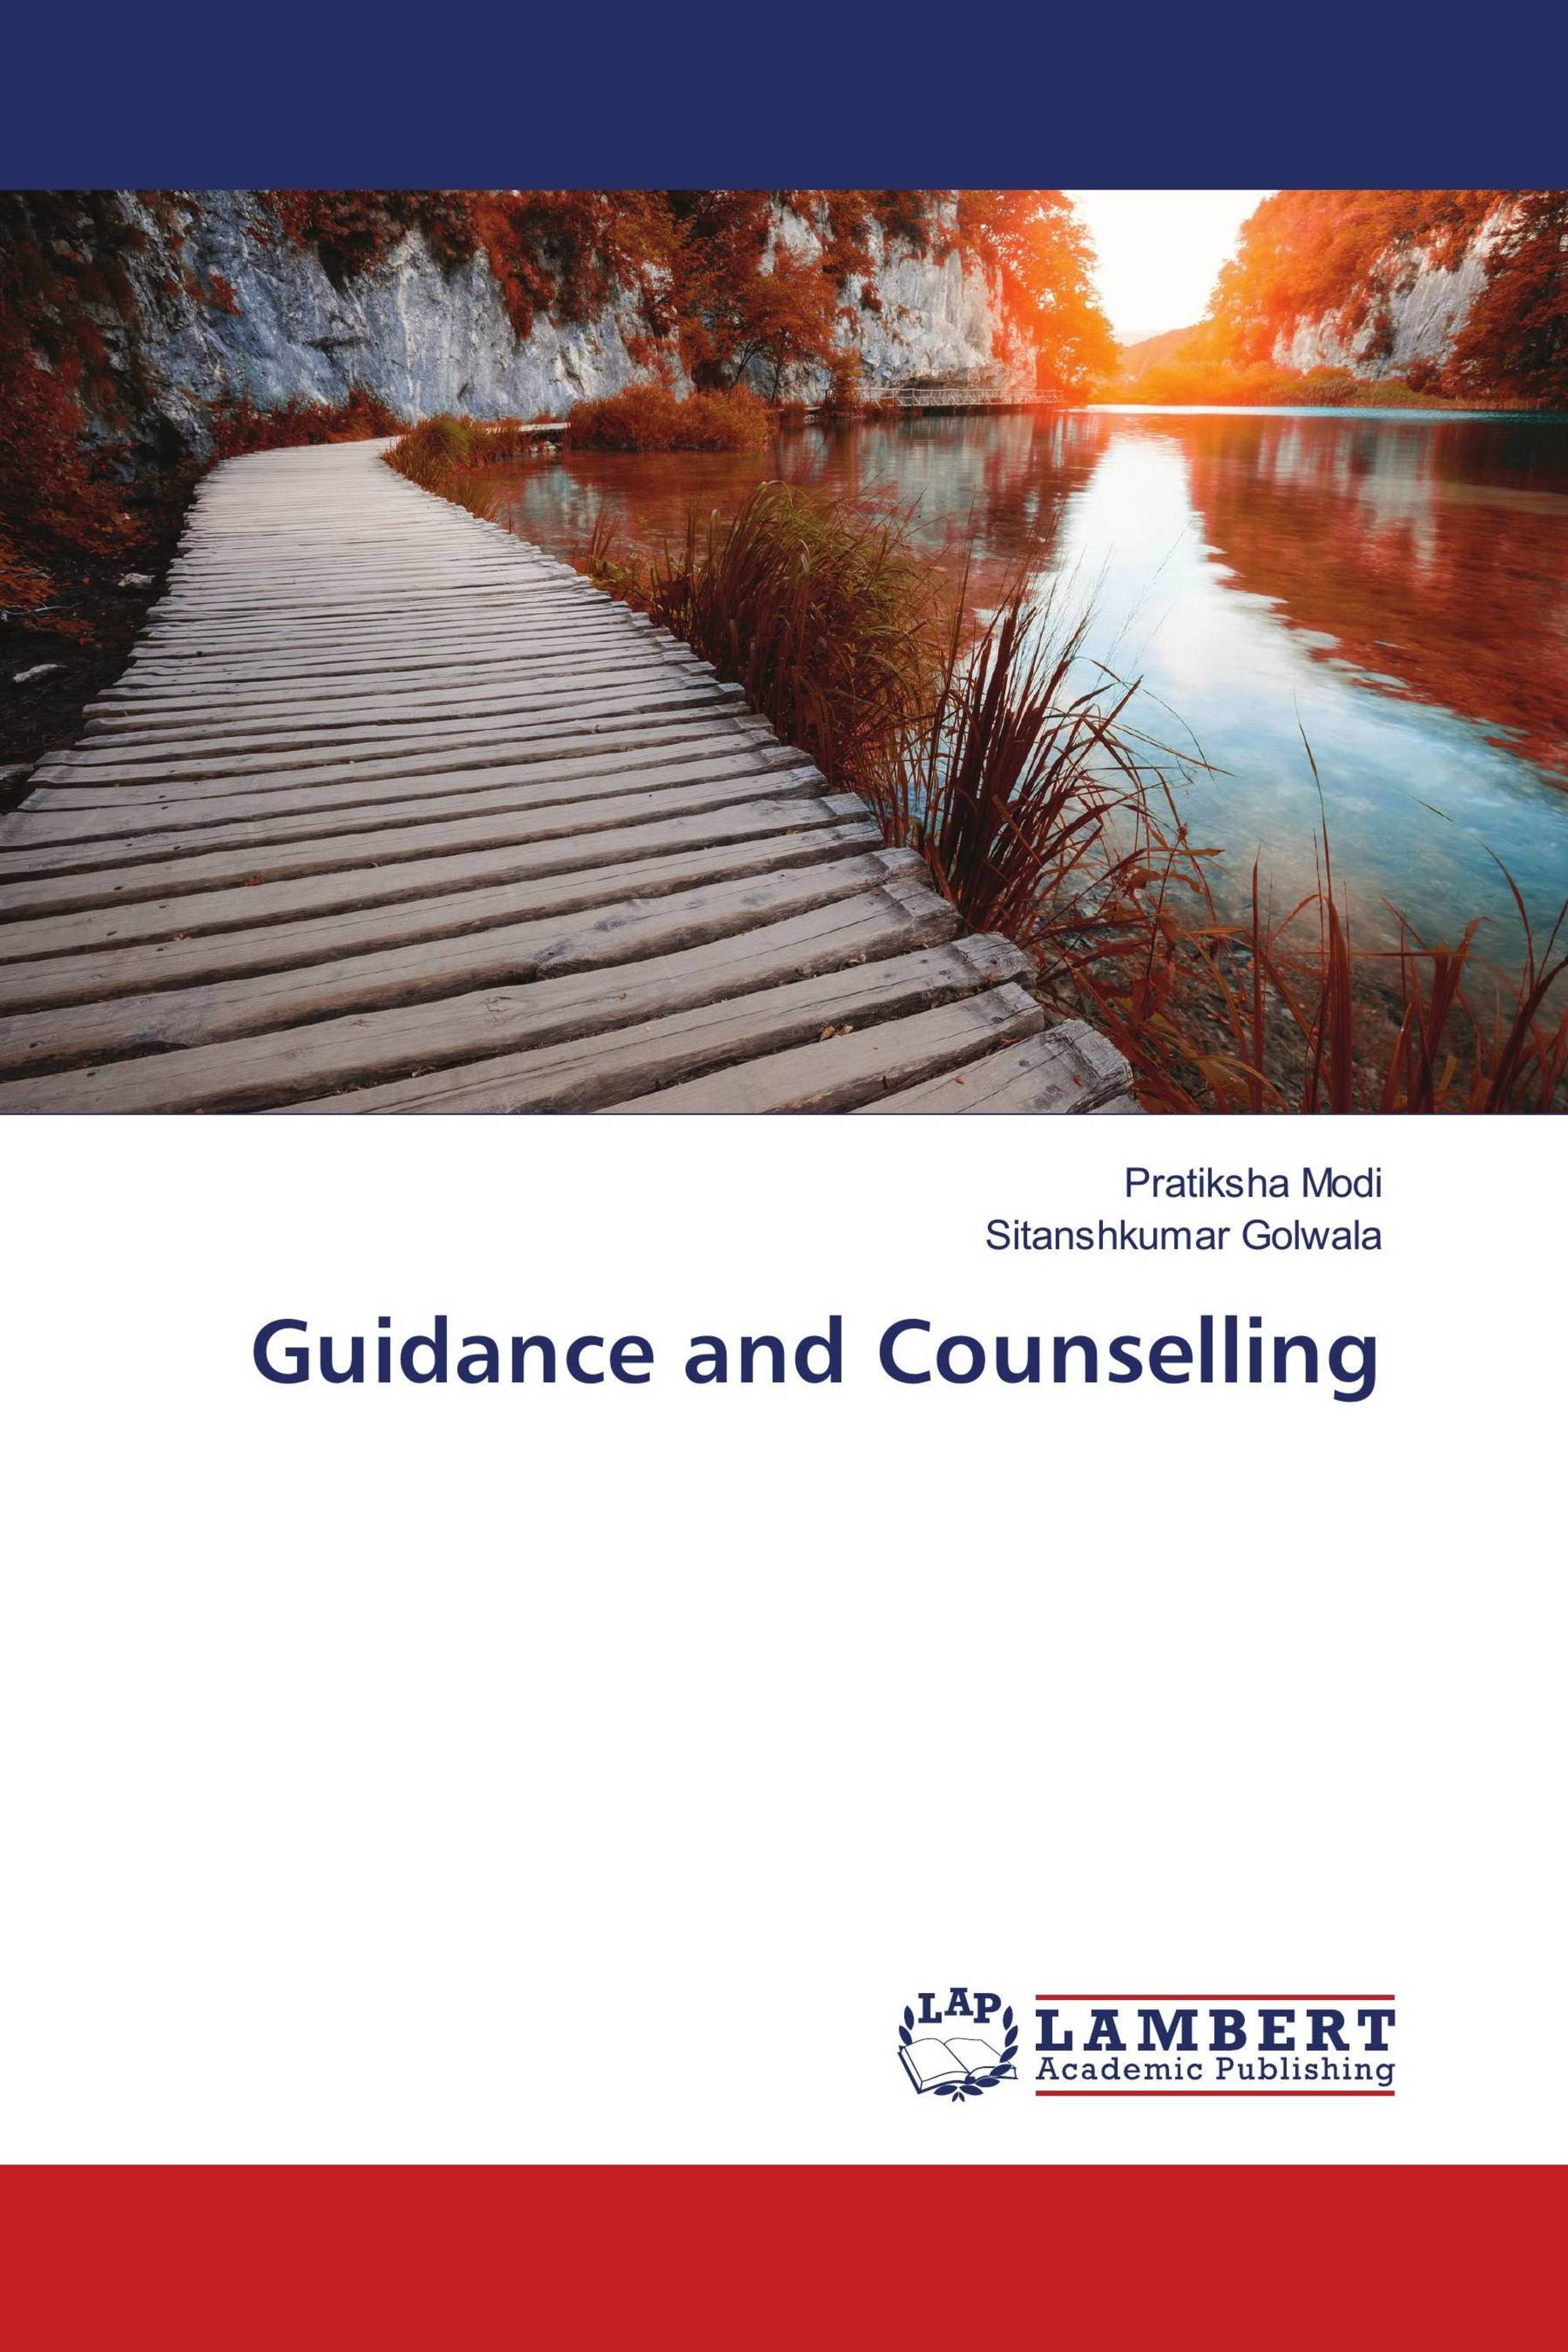 Dissertation guidance counseling